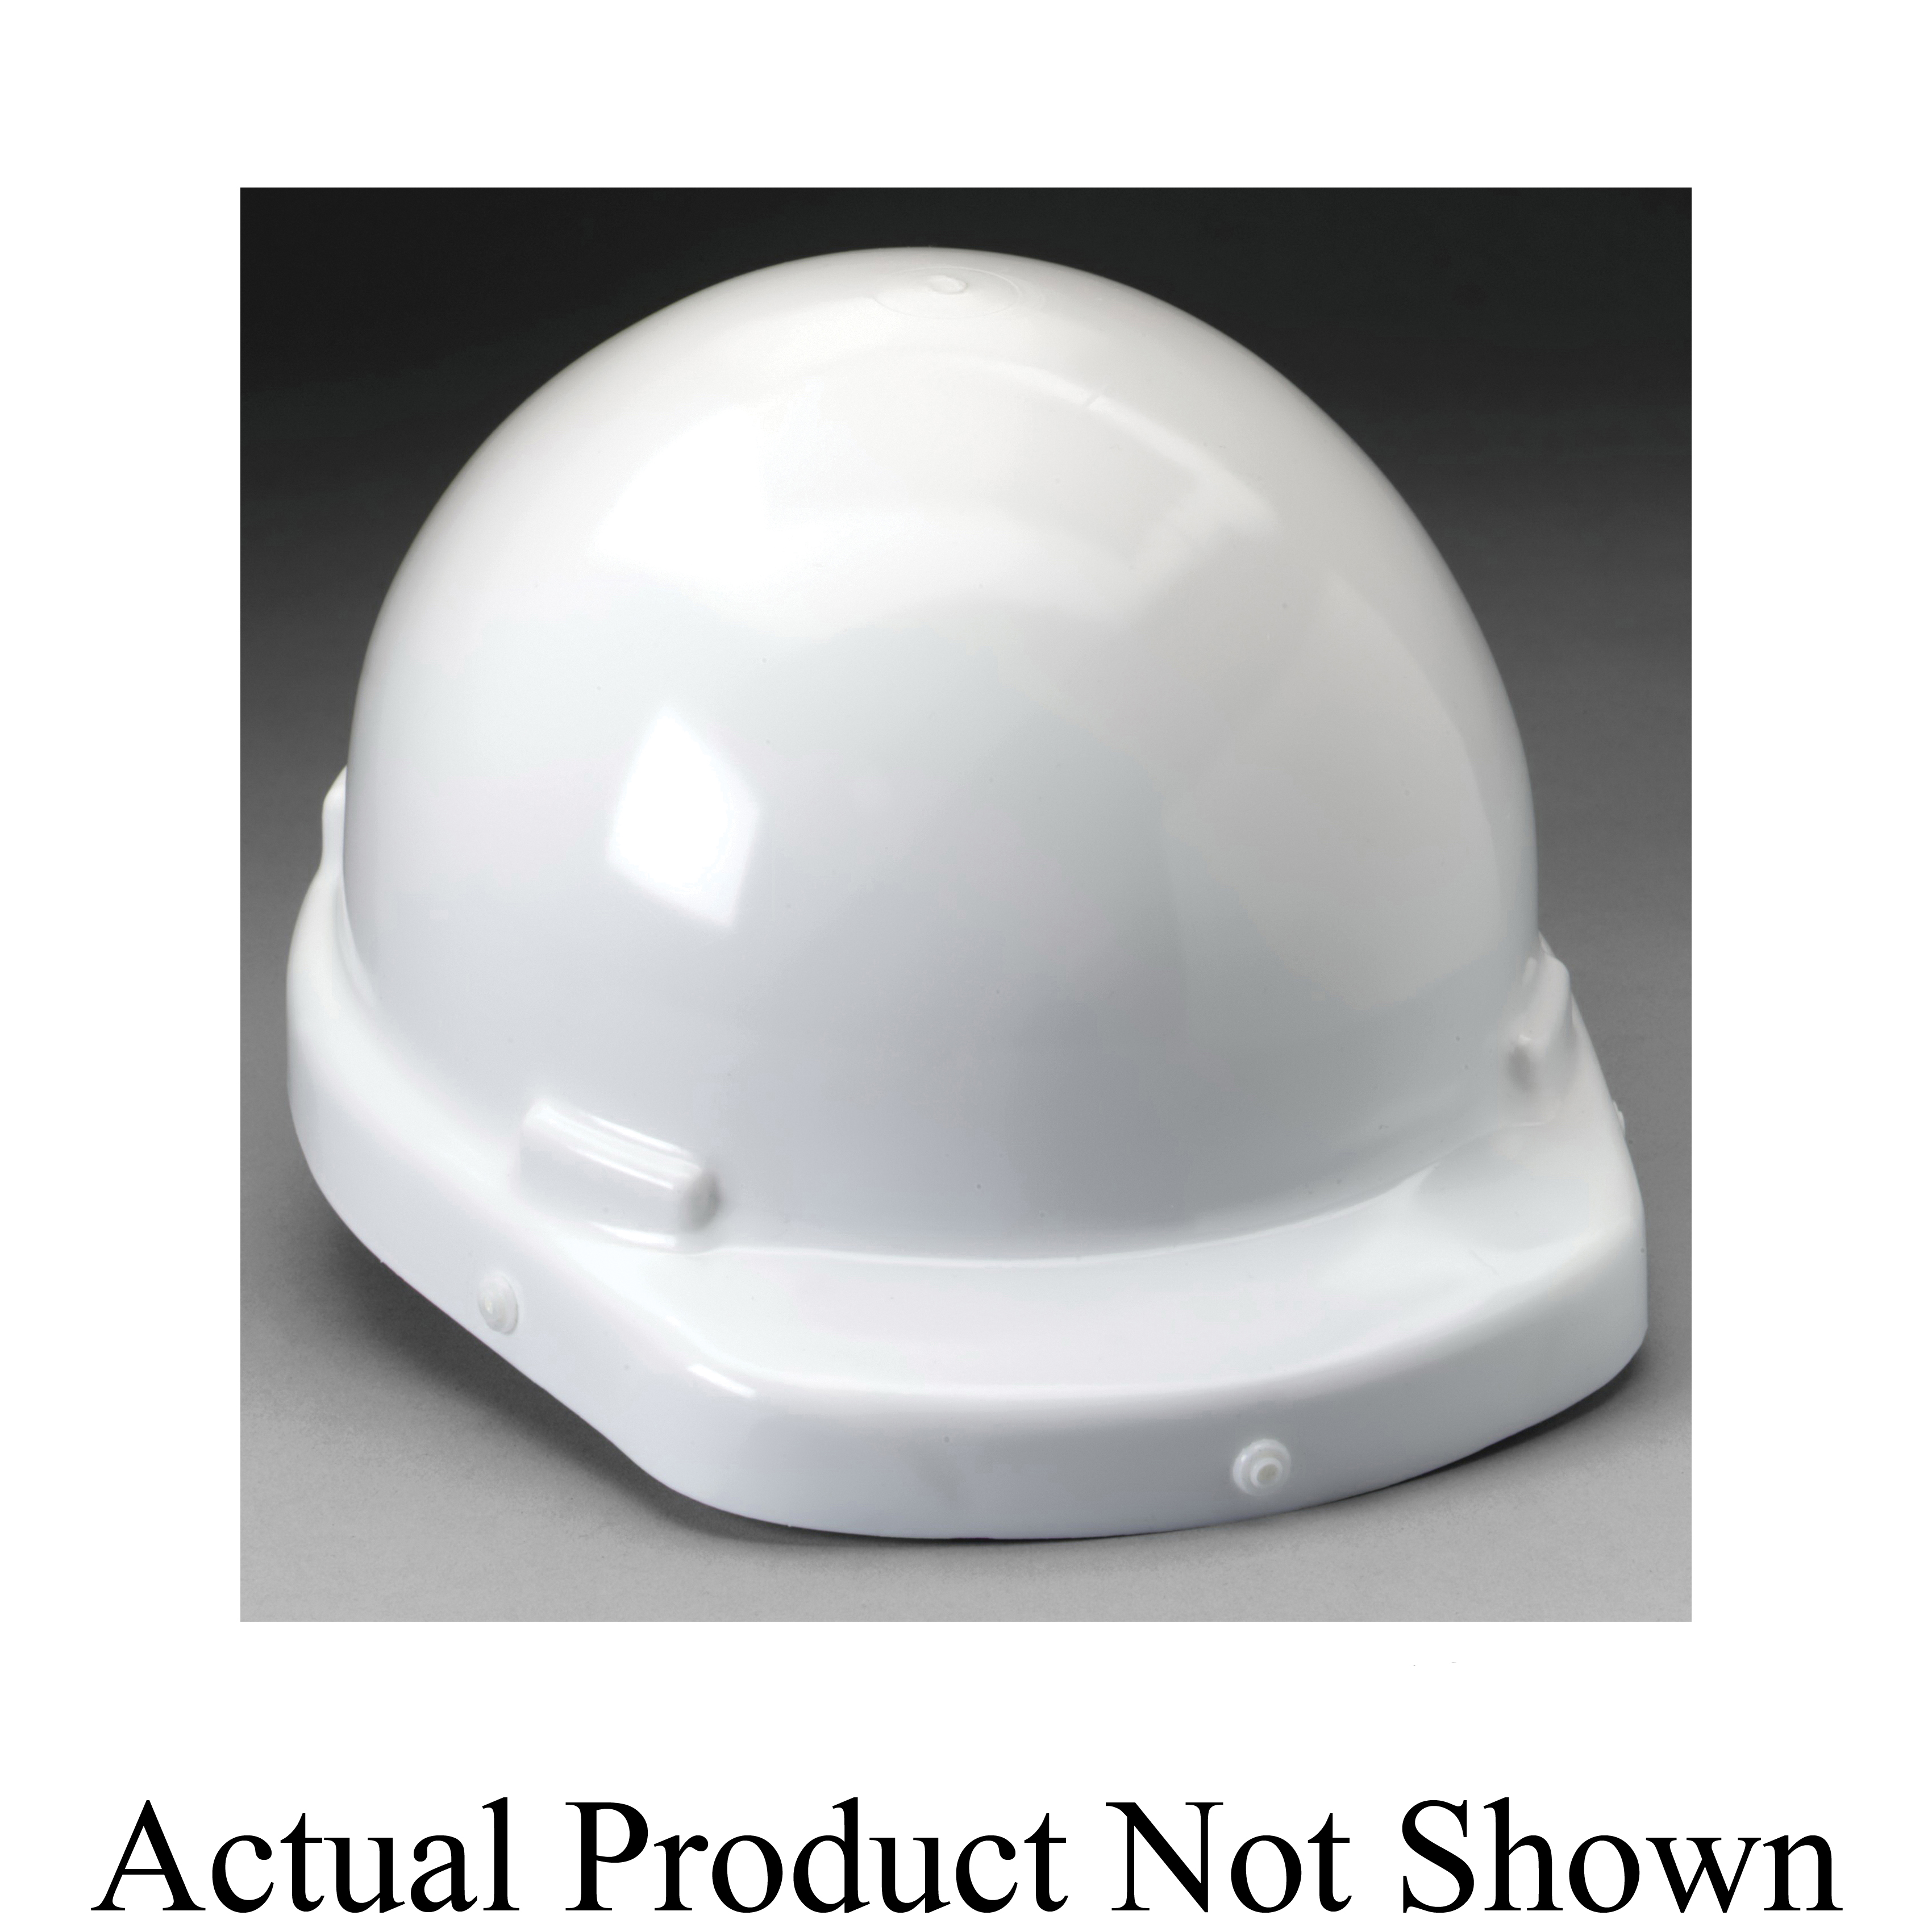 3M™ 051131-07039 Hatshell, For Use With 3M™ H-Series Hoods